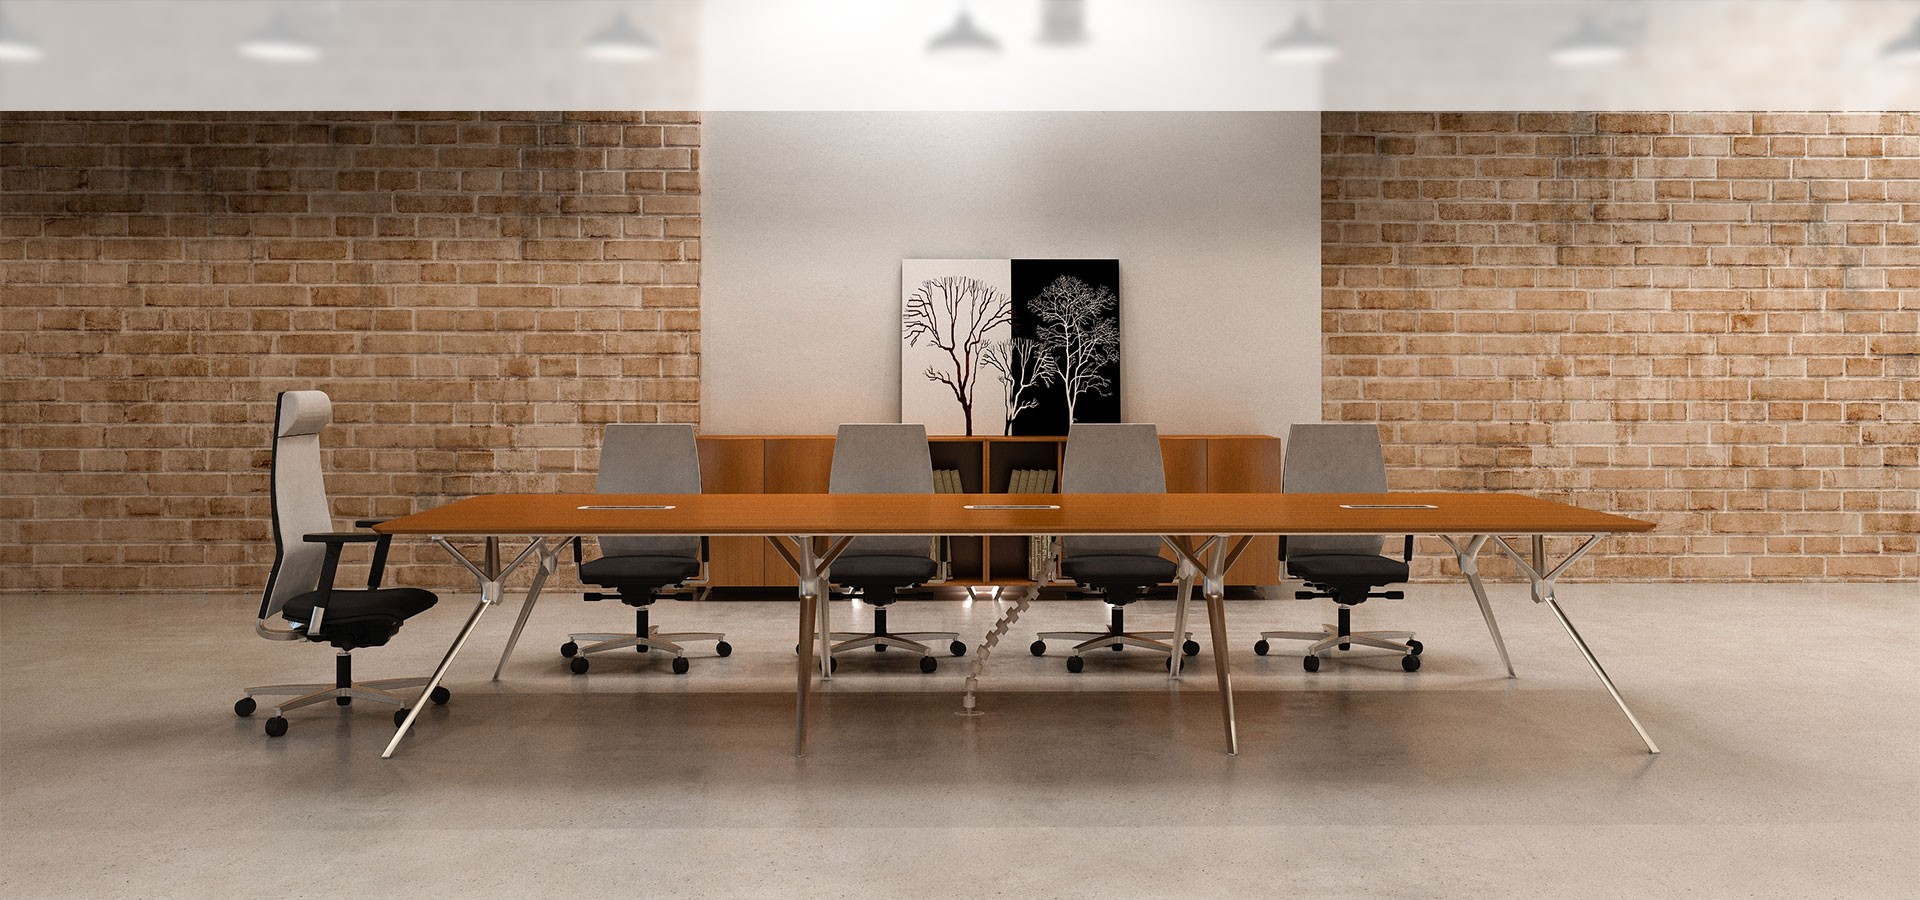 Ultraone group limited - Modern architectural trio ...